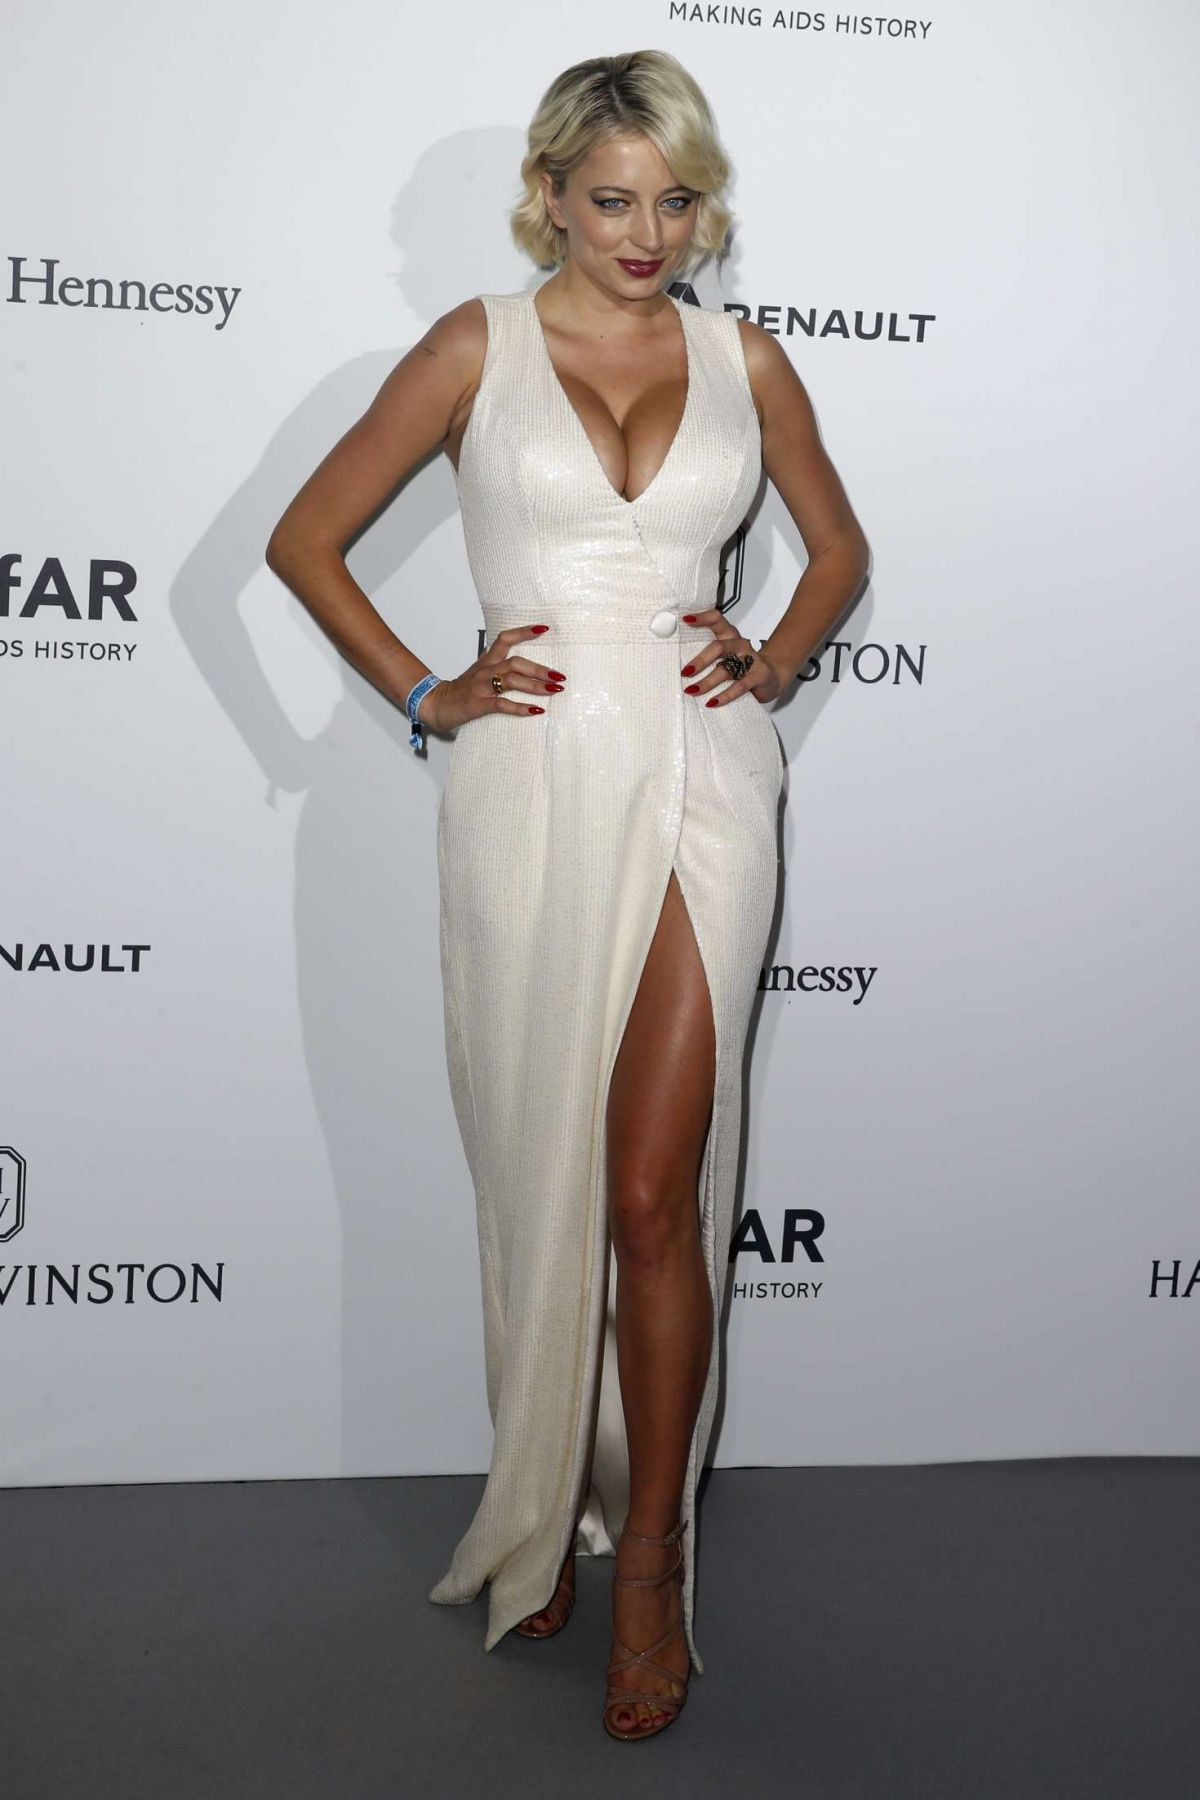 Caroline Vreeland At 2017 amfar gala haute couture fashion week in Paris   caroline-vreeland-at-2017-amfar-gala-haute-couture-fashion-week-in-paris_10